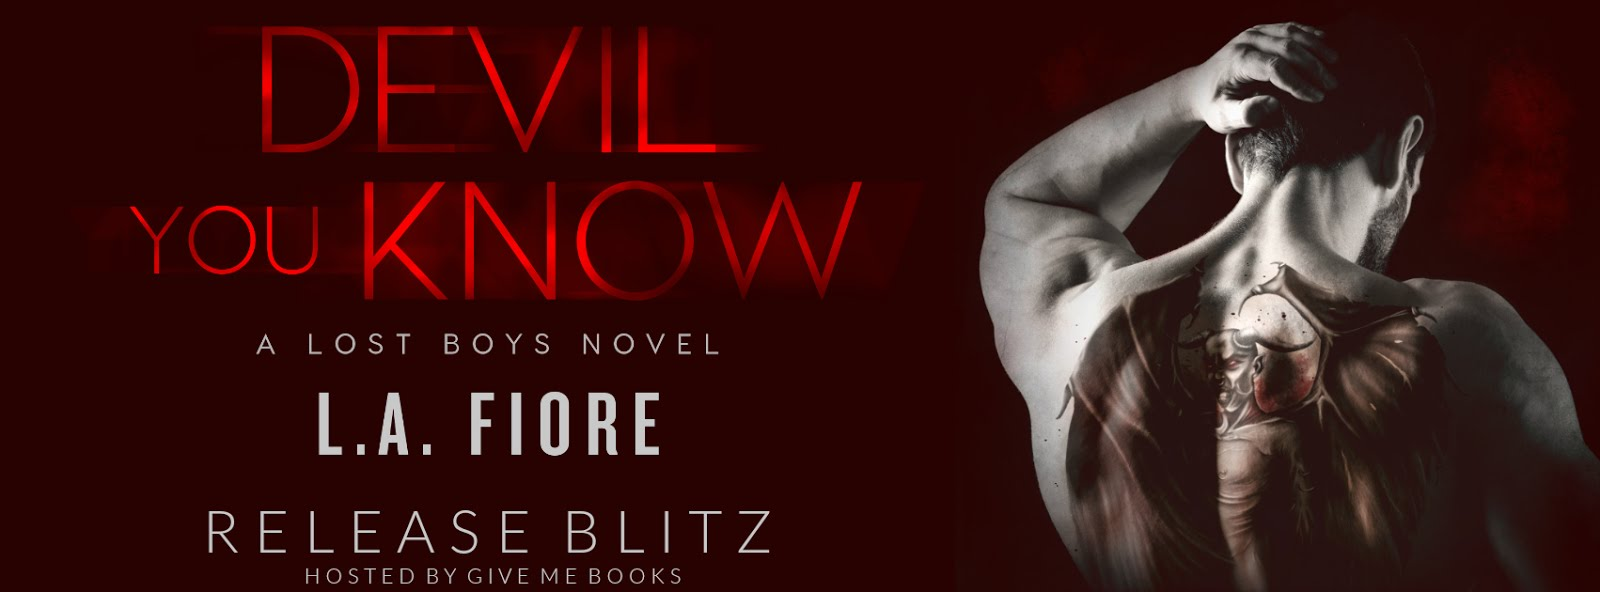 Devil You Know Release Blitz